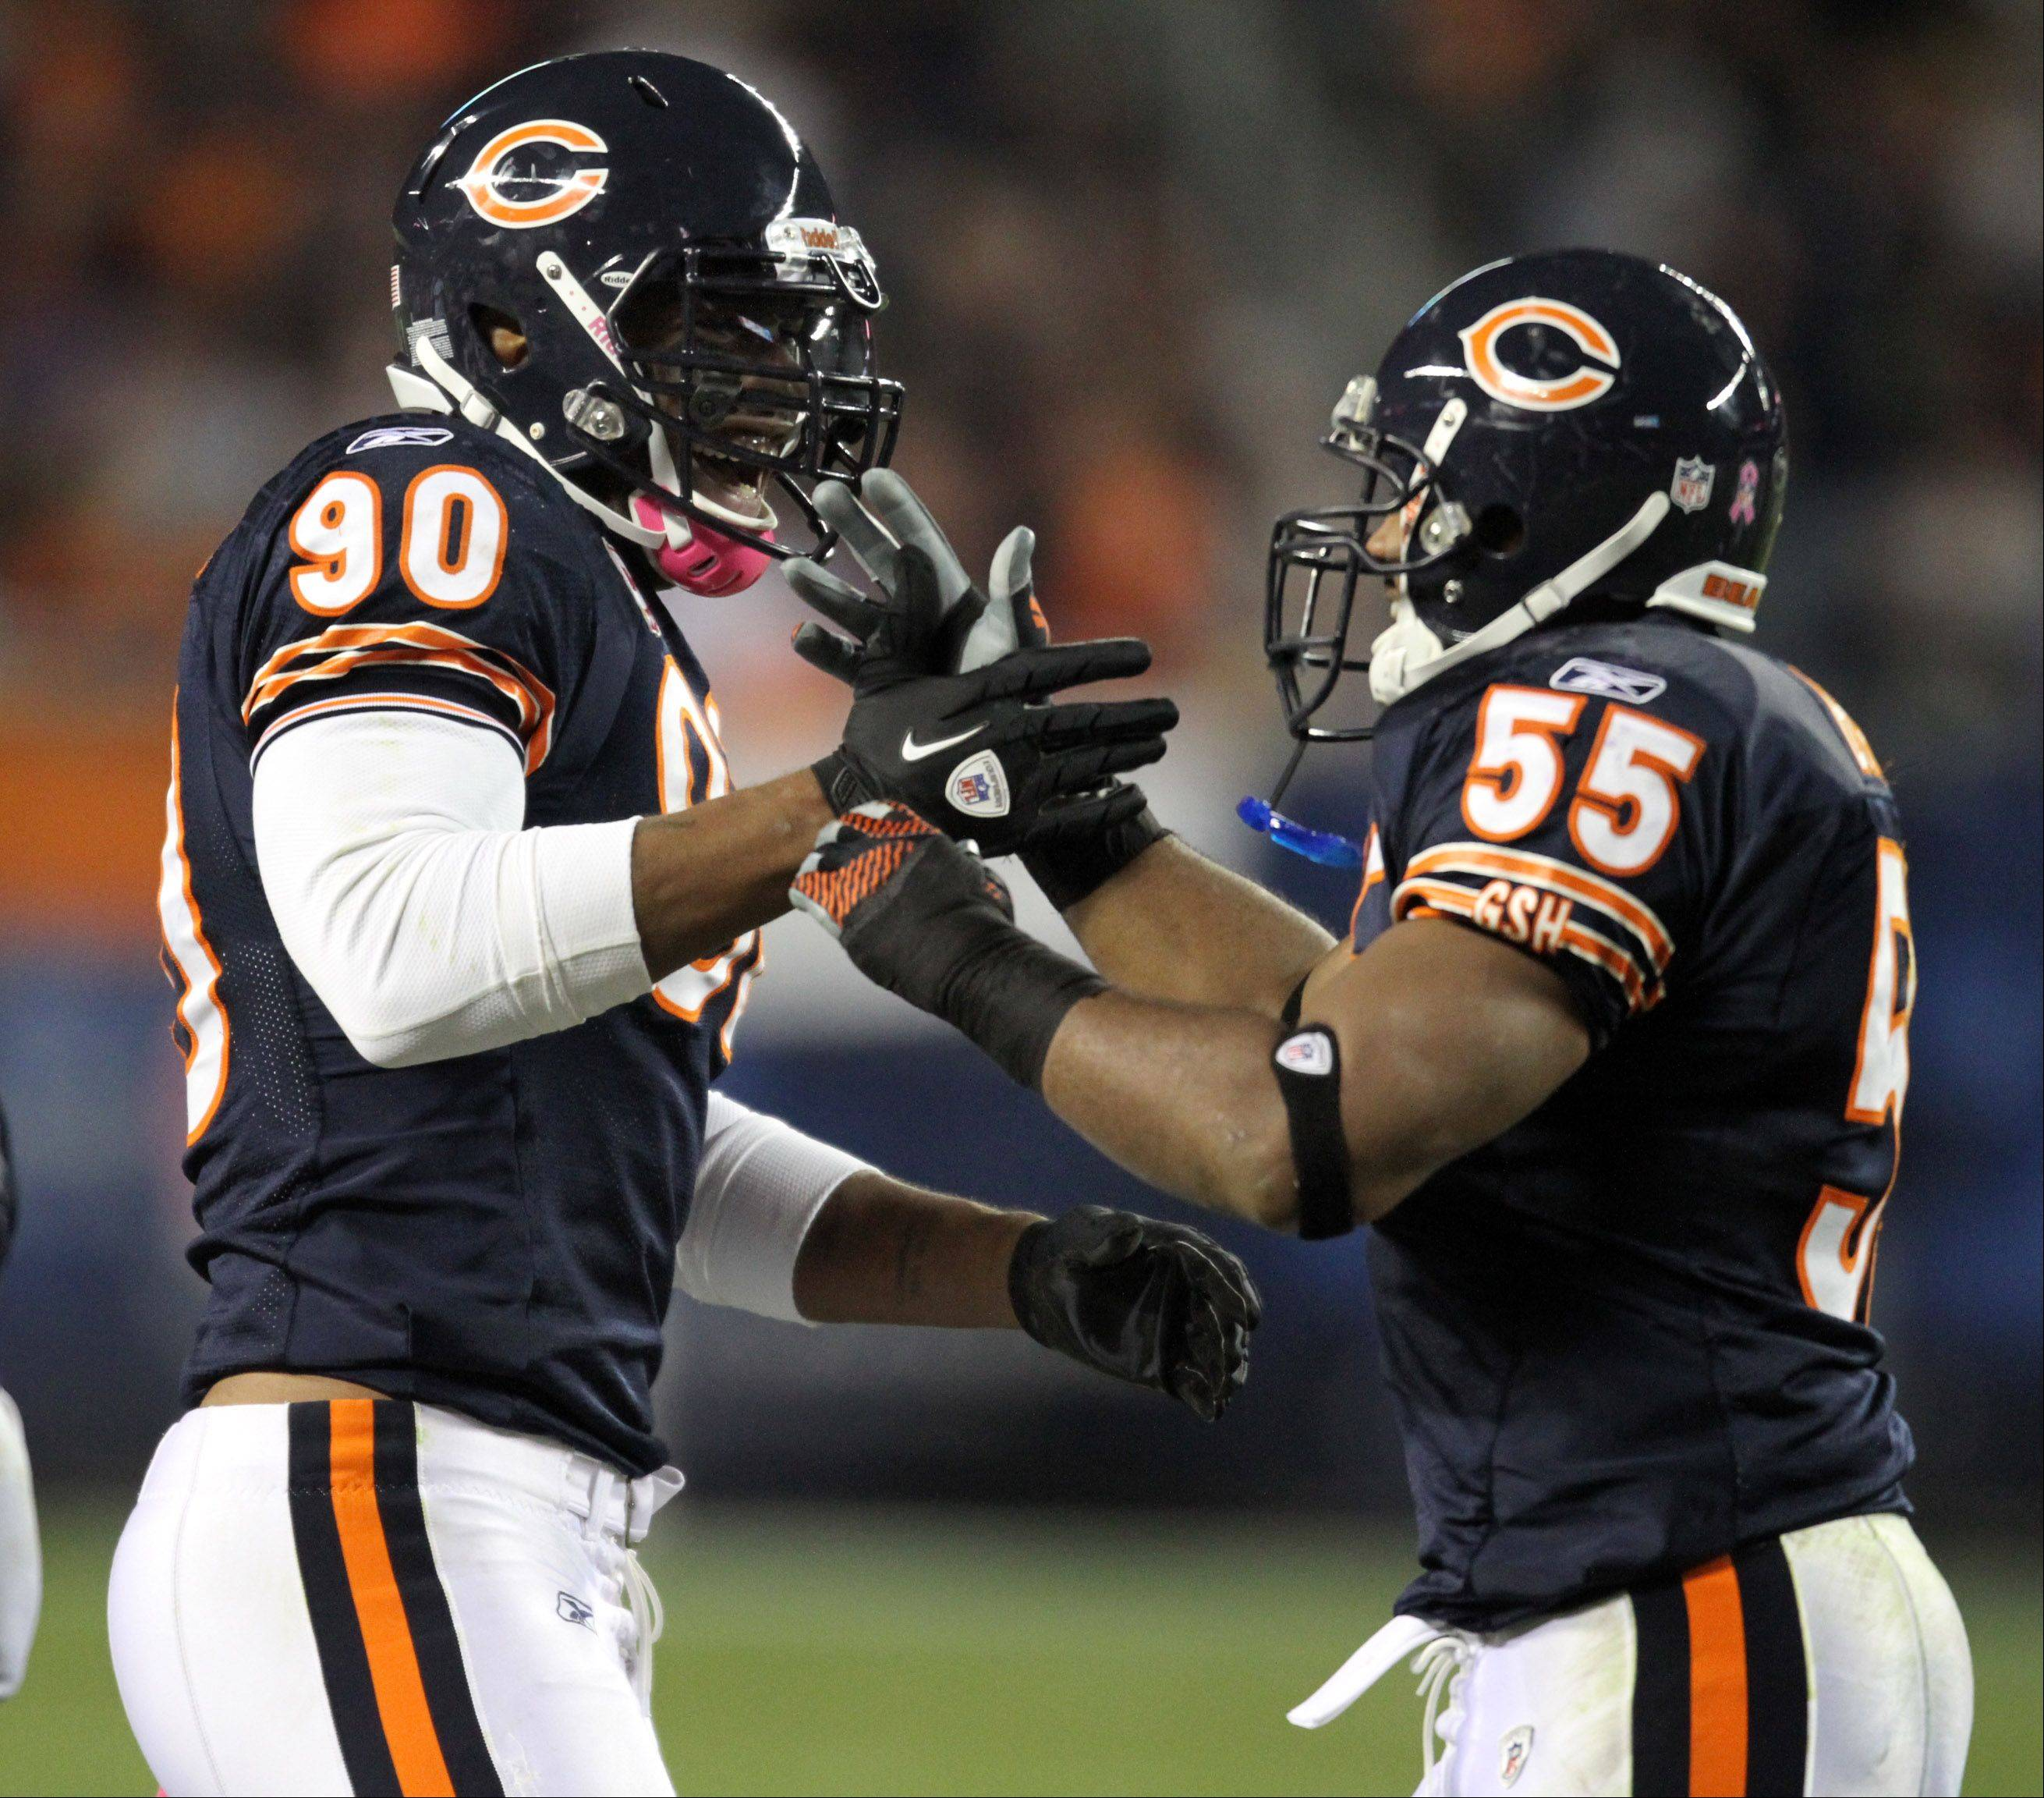 George Leclaire/gleclaire@dailyherald.com ¬ Chicago Bears Julius Peppers celebrates, with Lance Briggs, sacking Minnesota Vikings Minnesota Vikings quarterback Donovan McNabb in the third quarter at Soldier Field in Chicago on Sunday, October 16th.